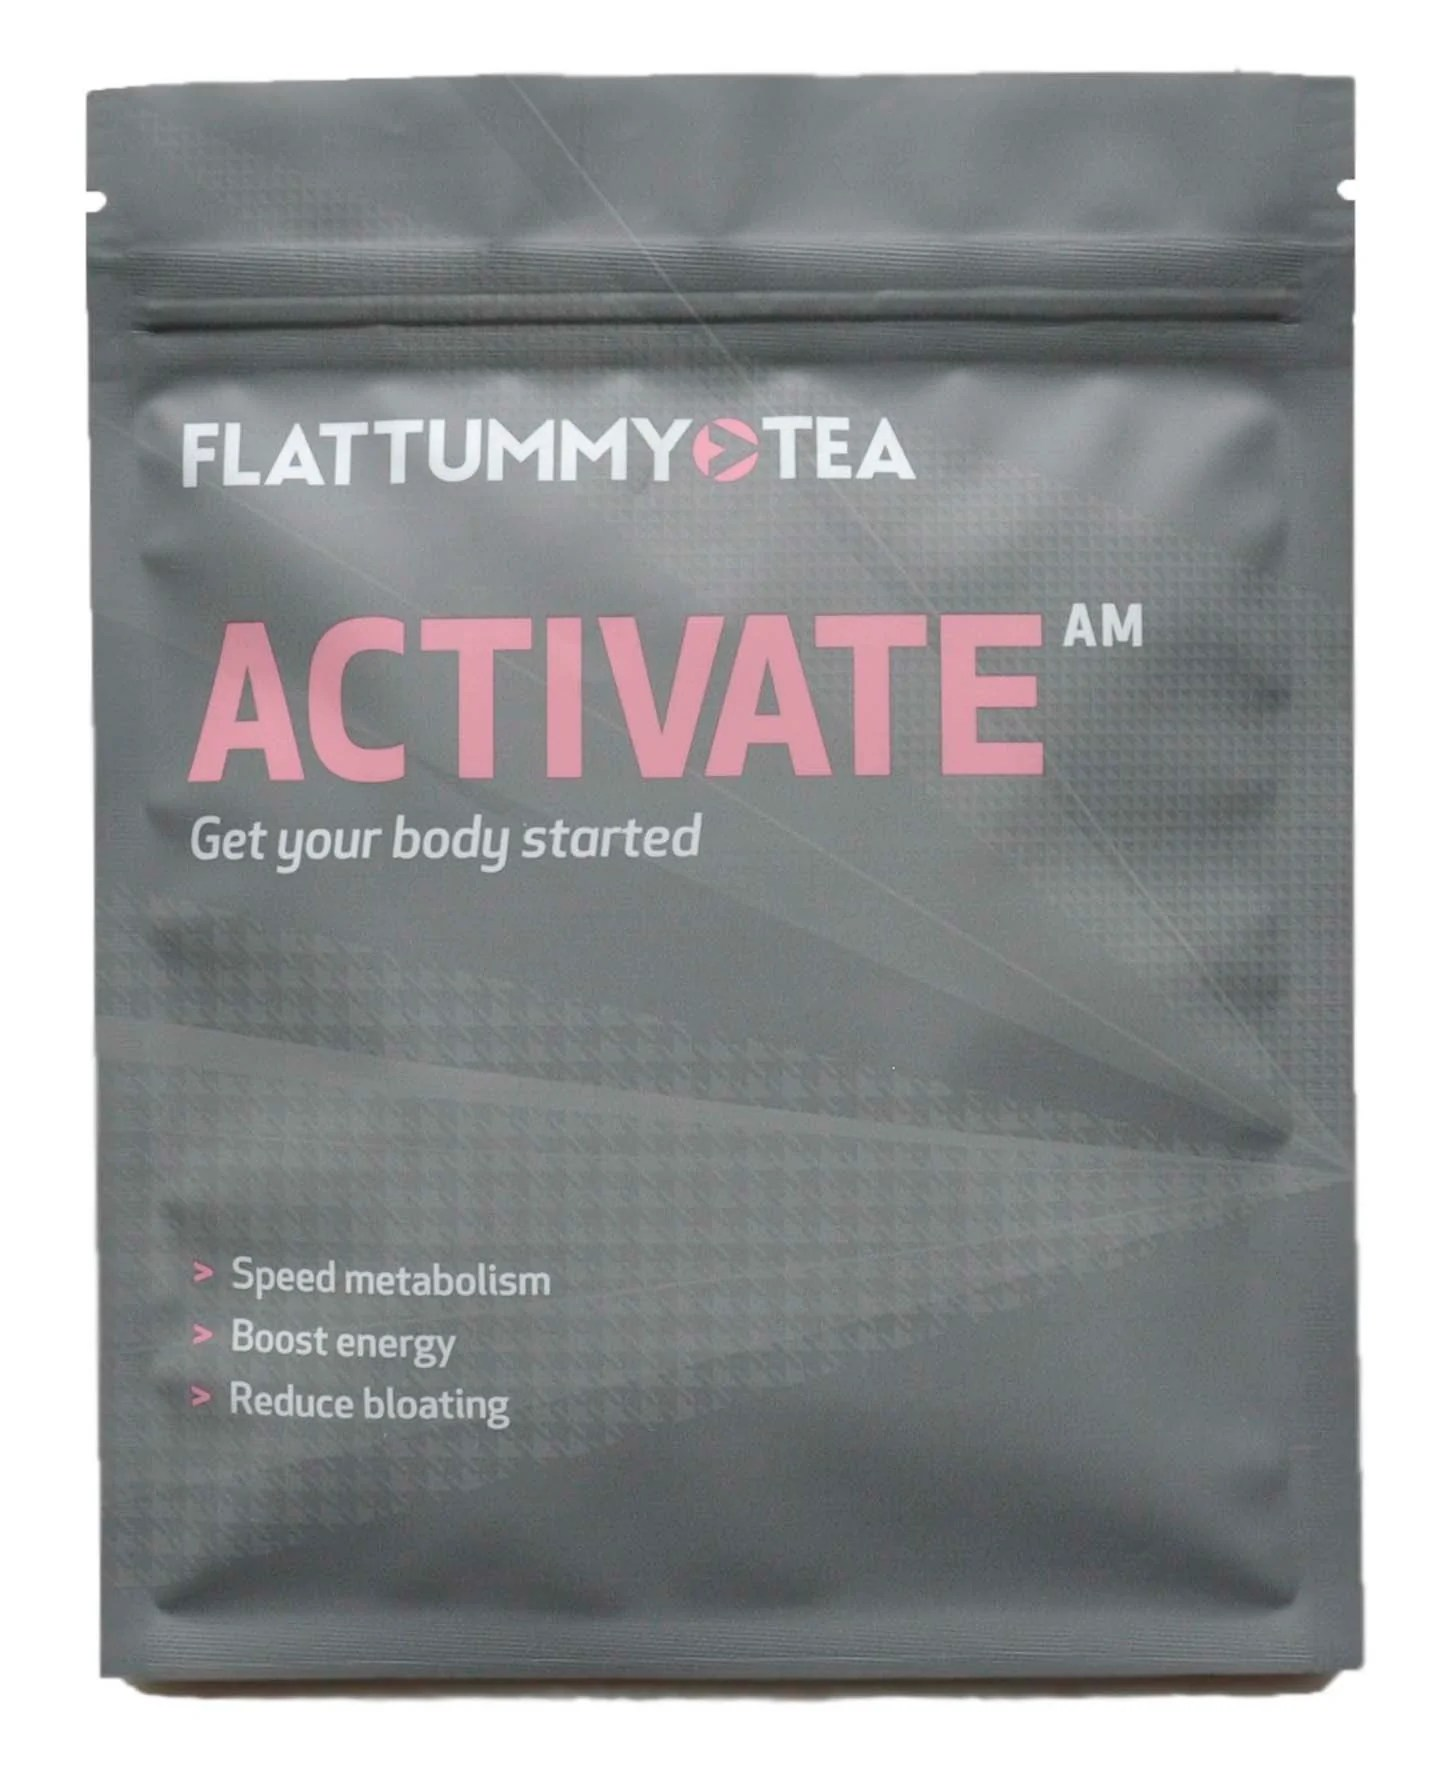 Flat tummy tea discount coupon